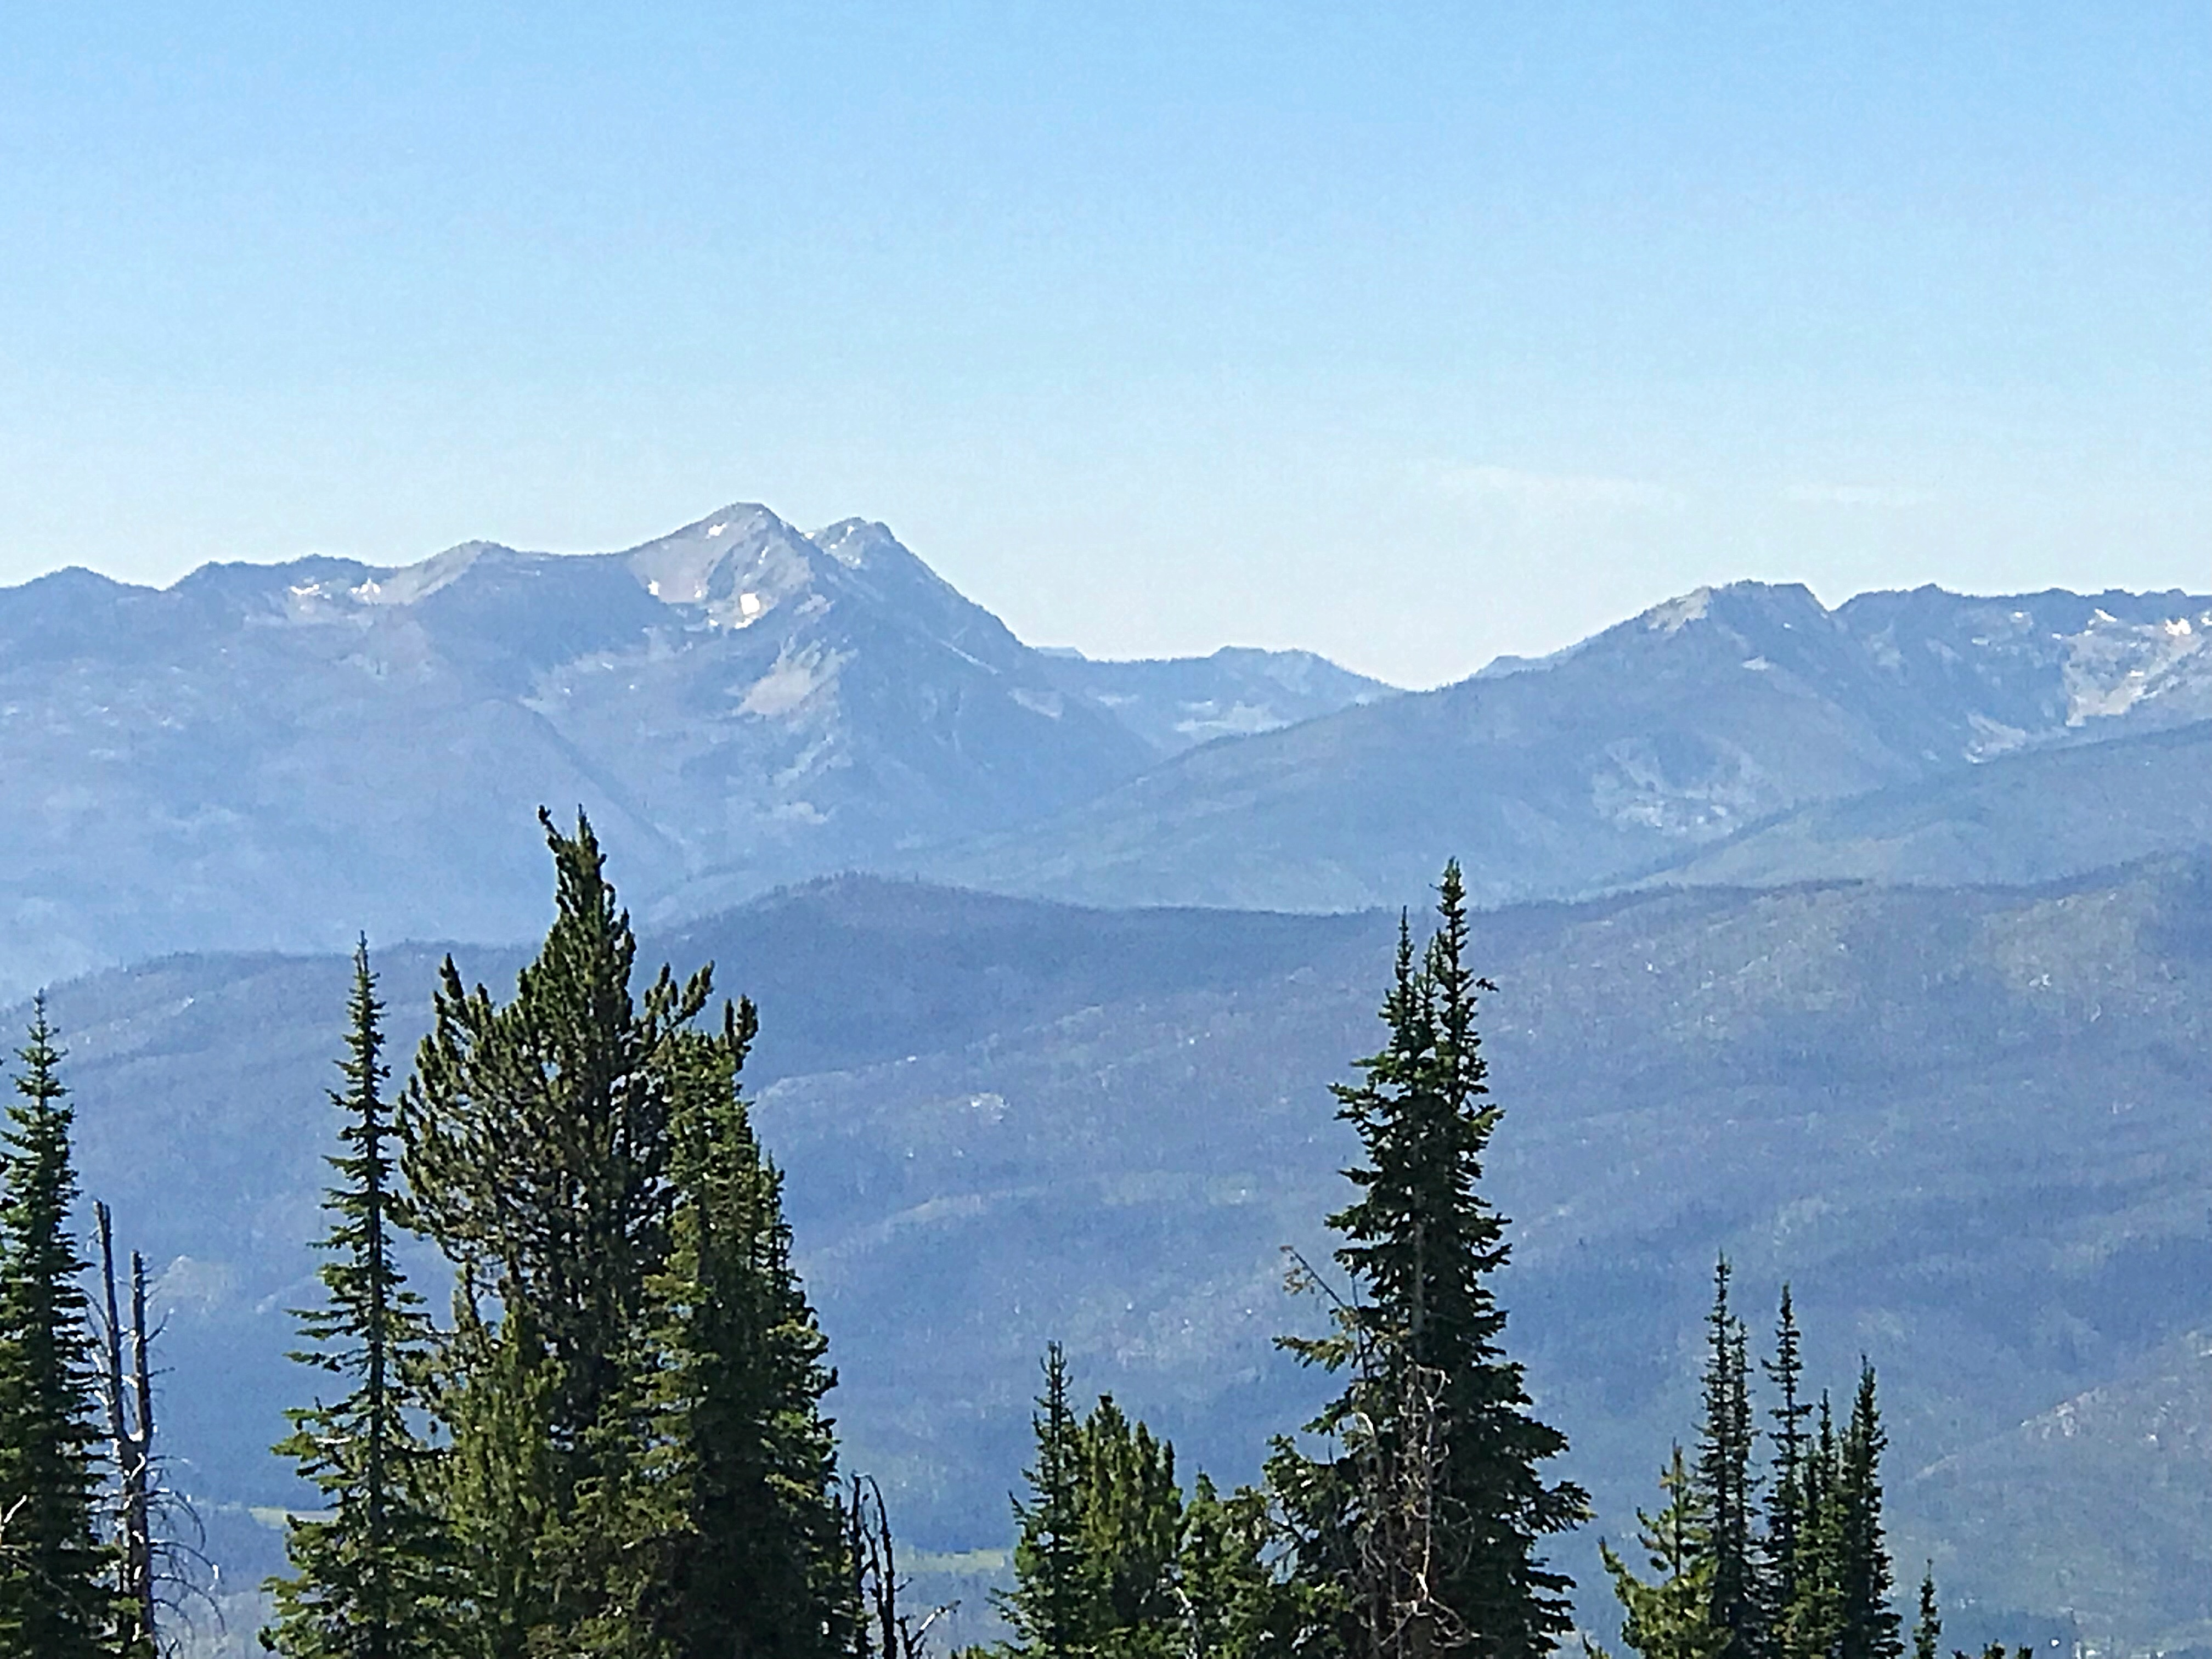 The northern Lick Creek Range viewed from War Eagle Mountain. North and South Loon peaks are on the left. Storm Mountain on the right.